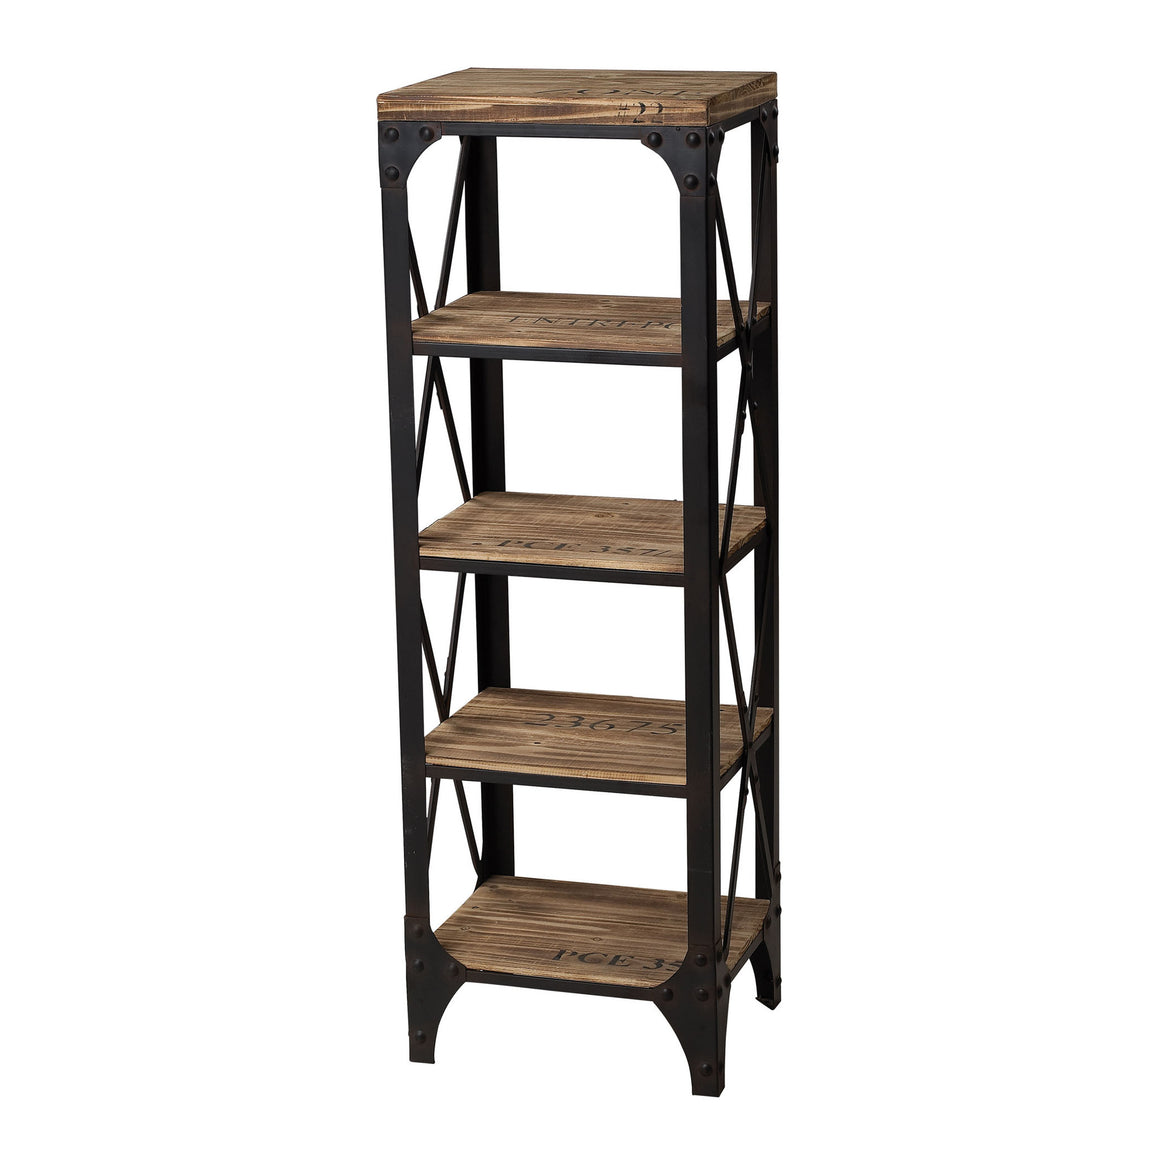 Shelving - Industrial Shelves